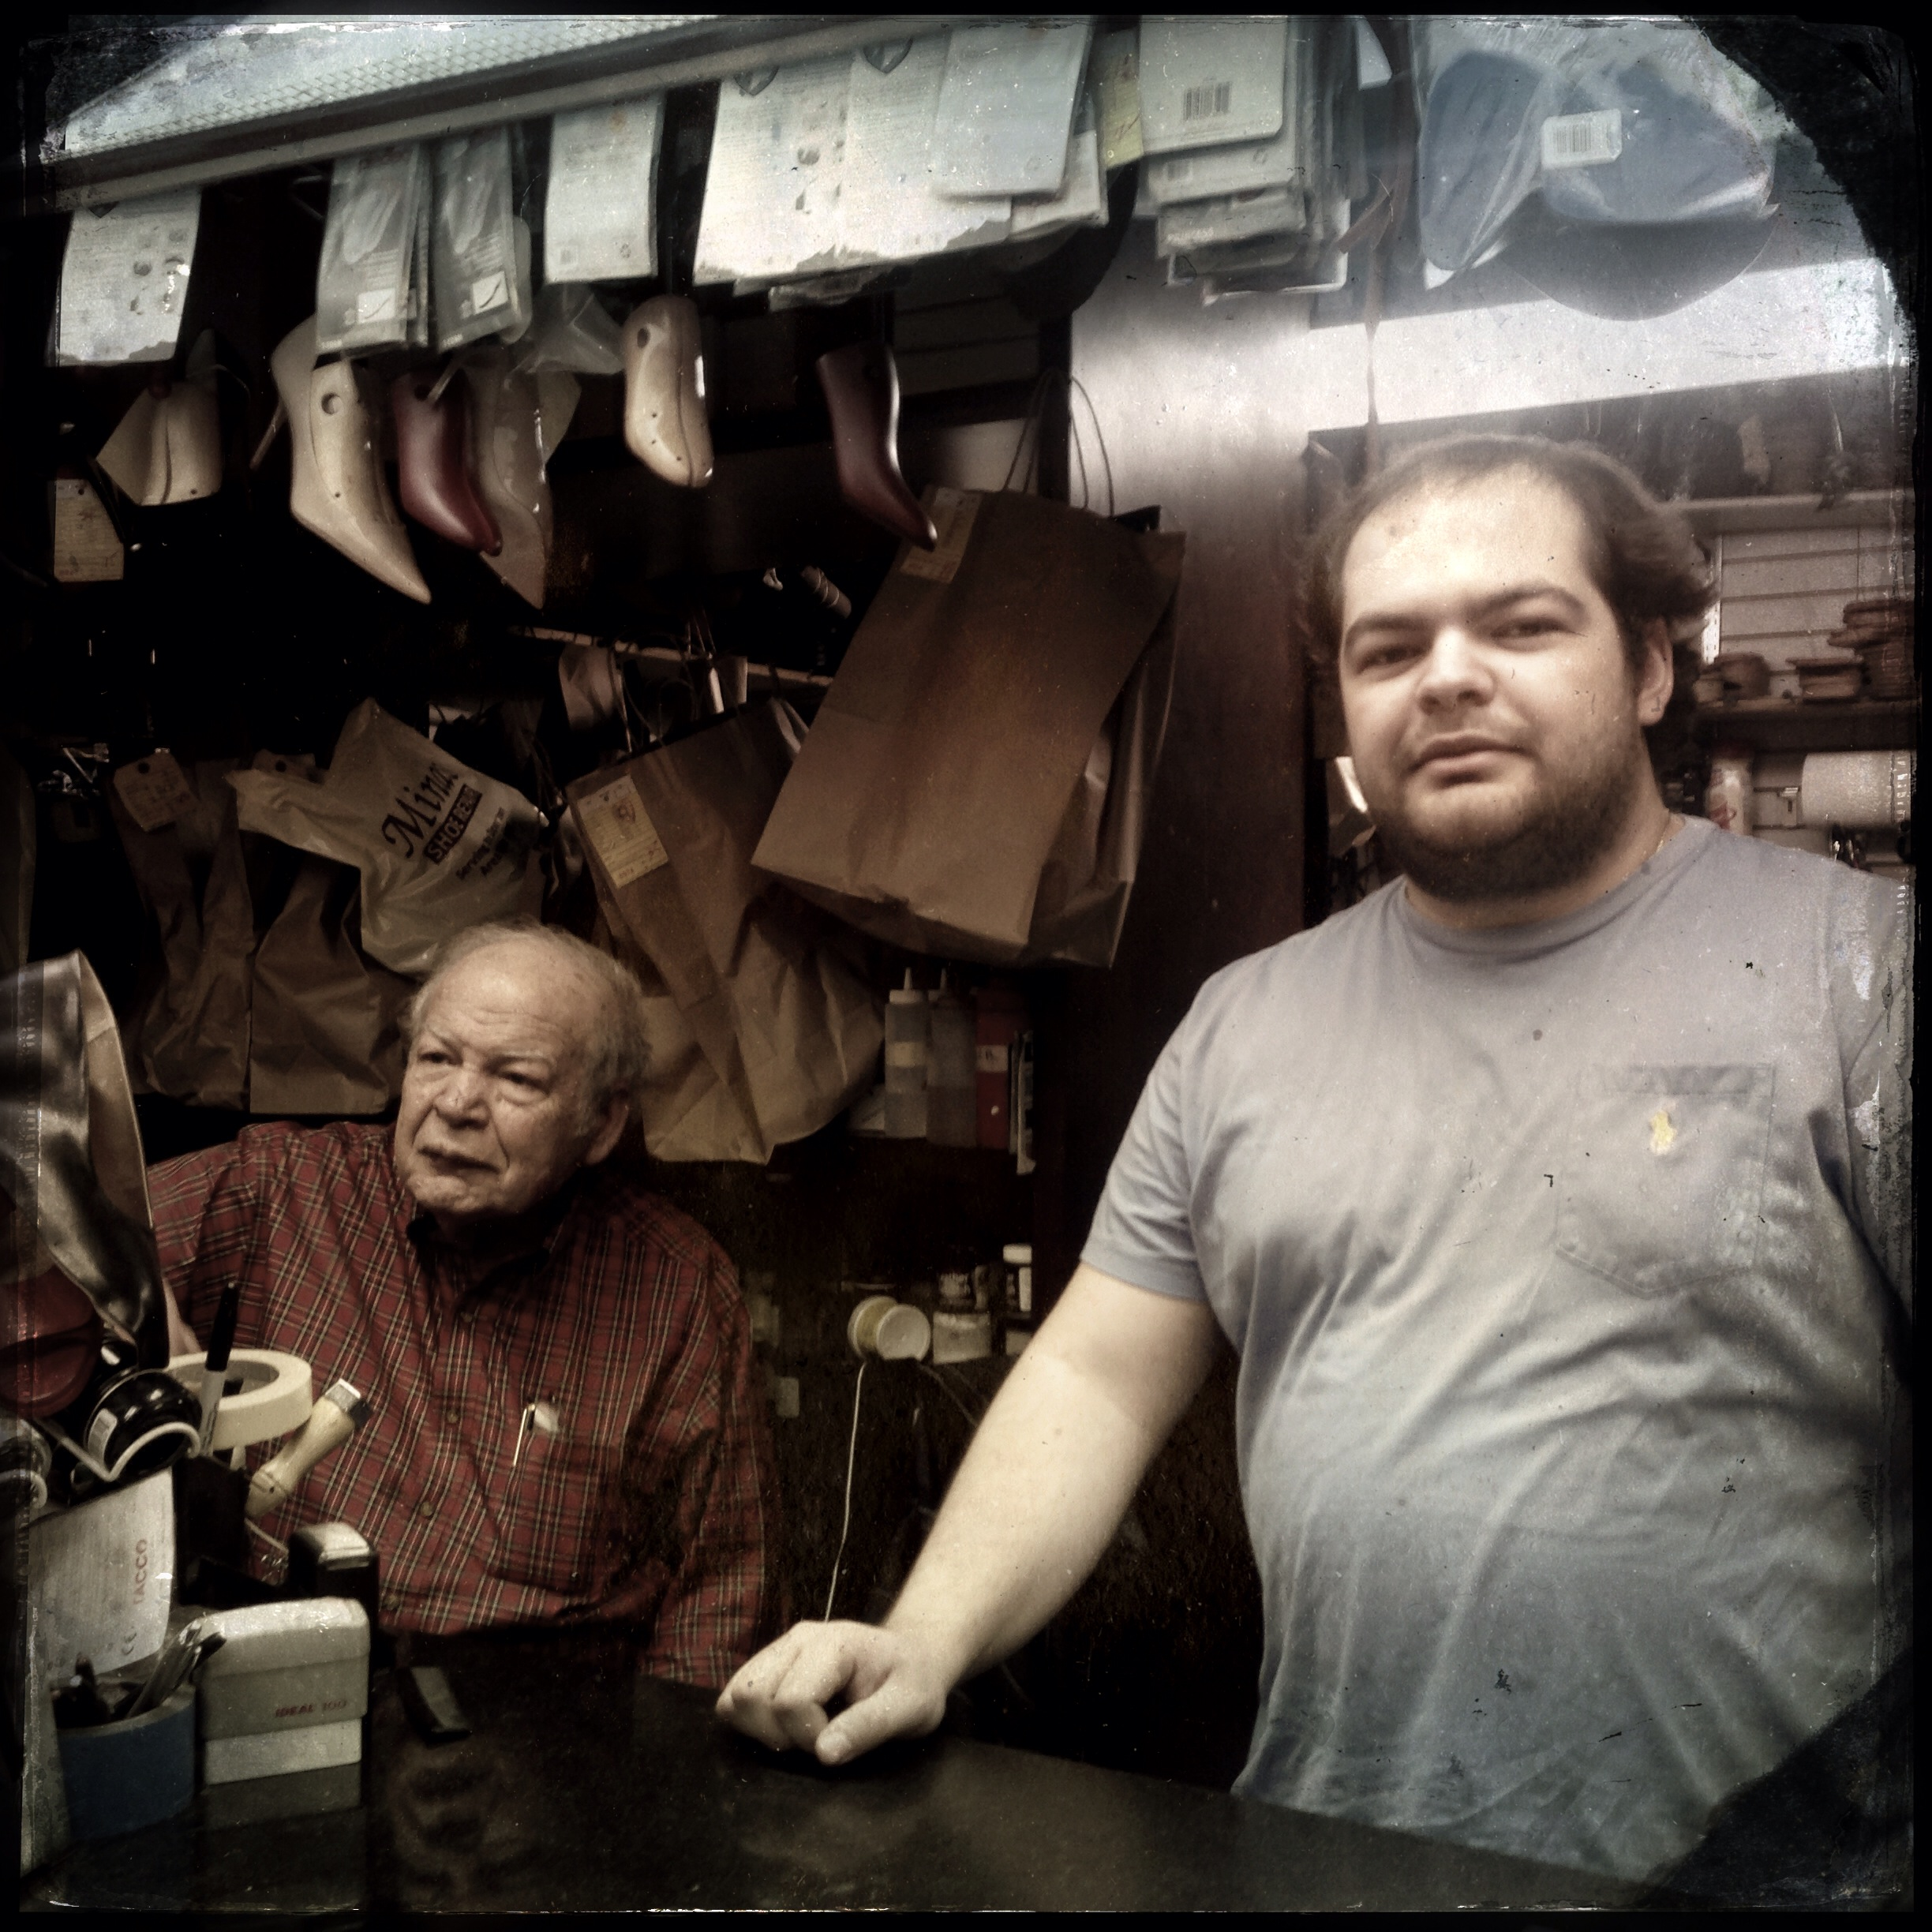 Minas and Minas Jr of Minas Shoe Repair